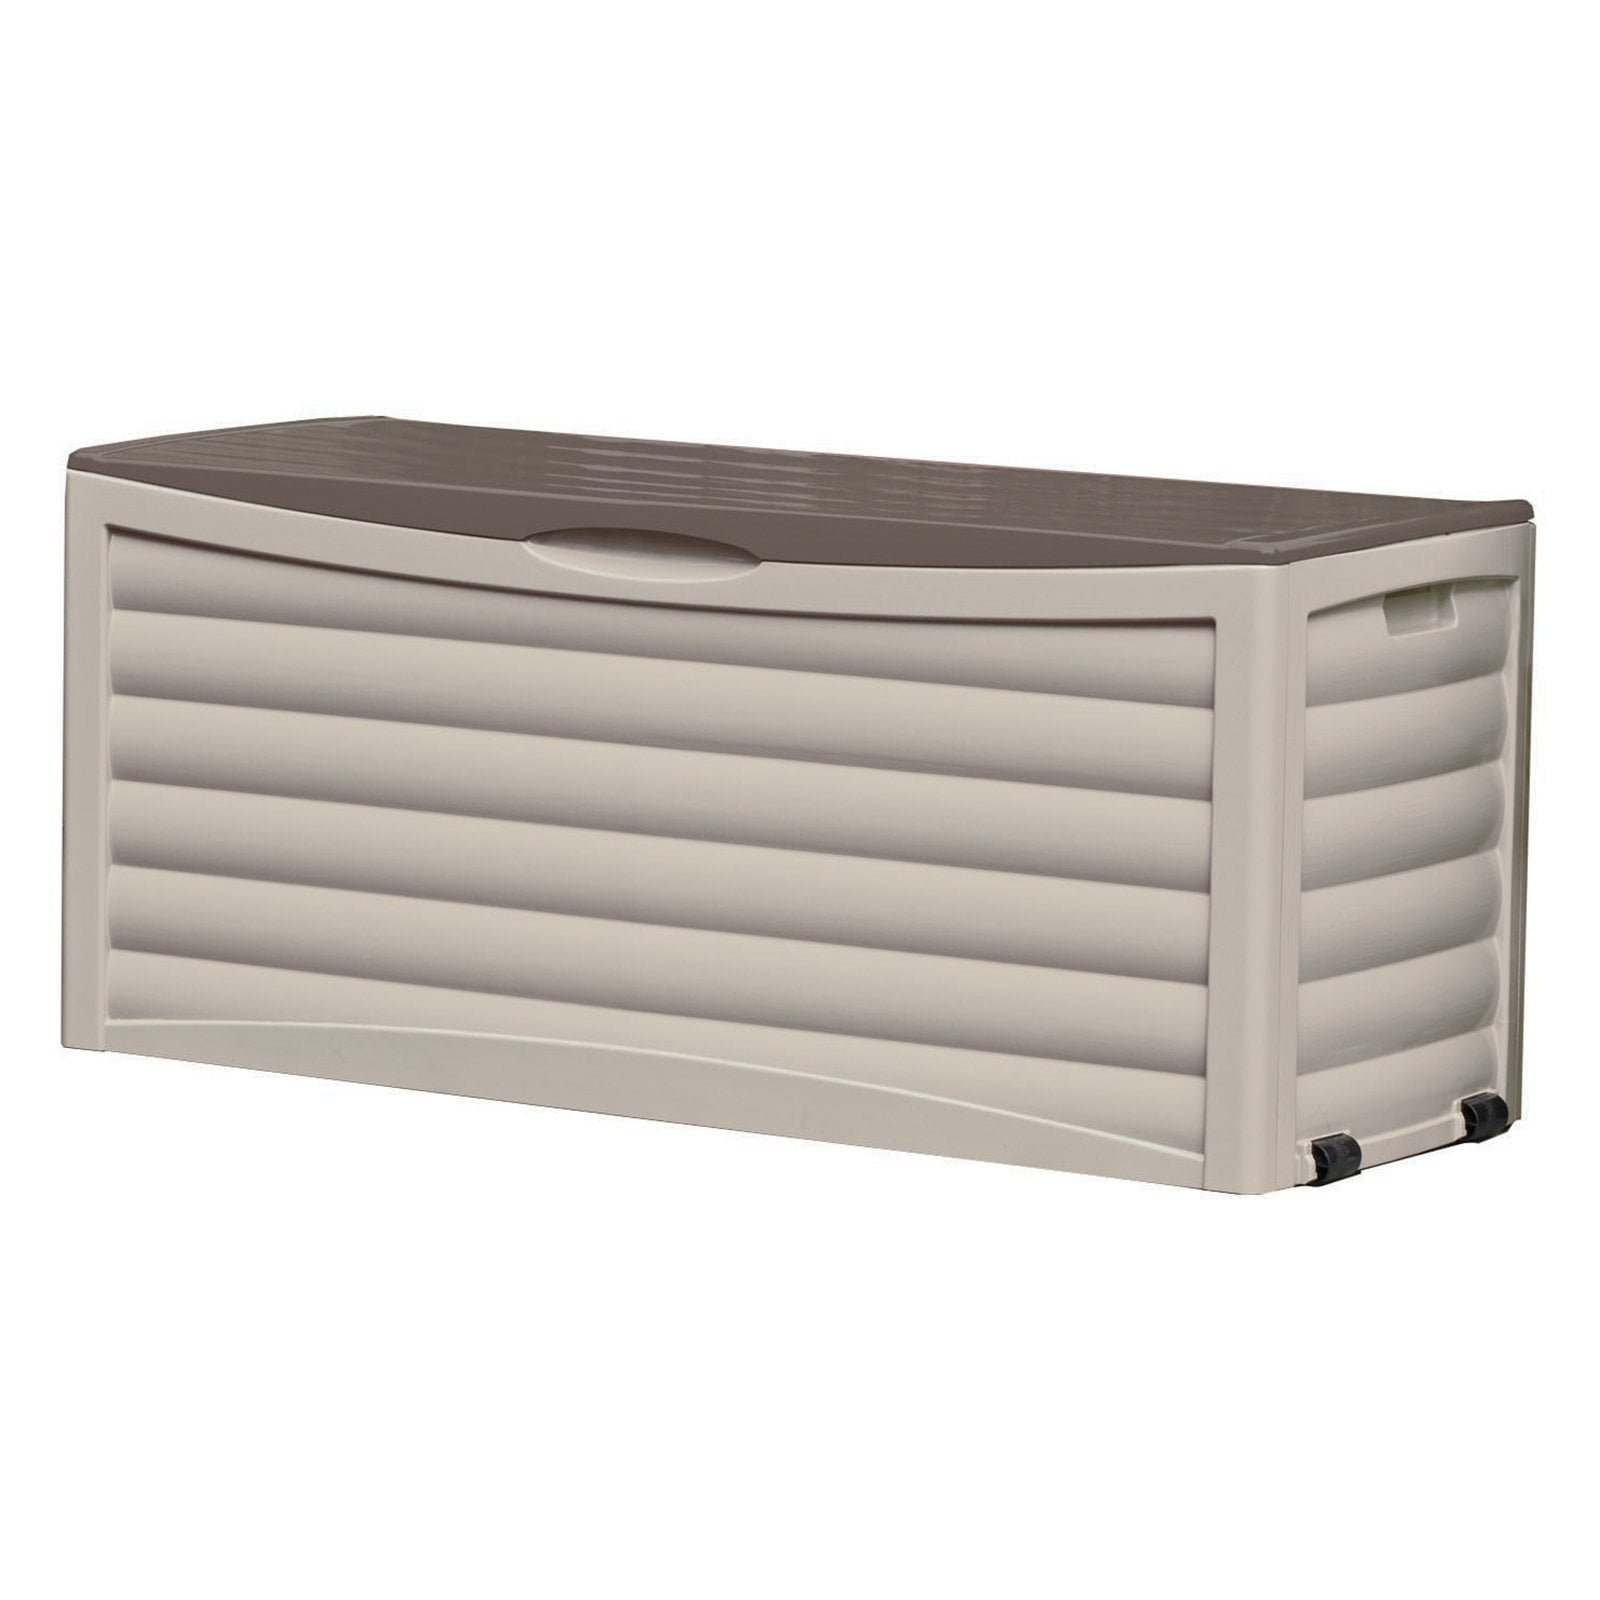 Suncast 103 Gallon Deck Box, Light Taupe, DB10300   Walmart.com